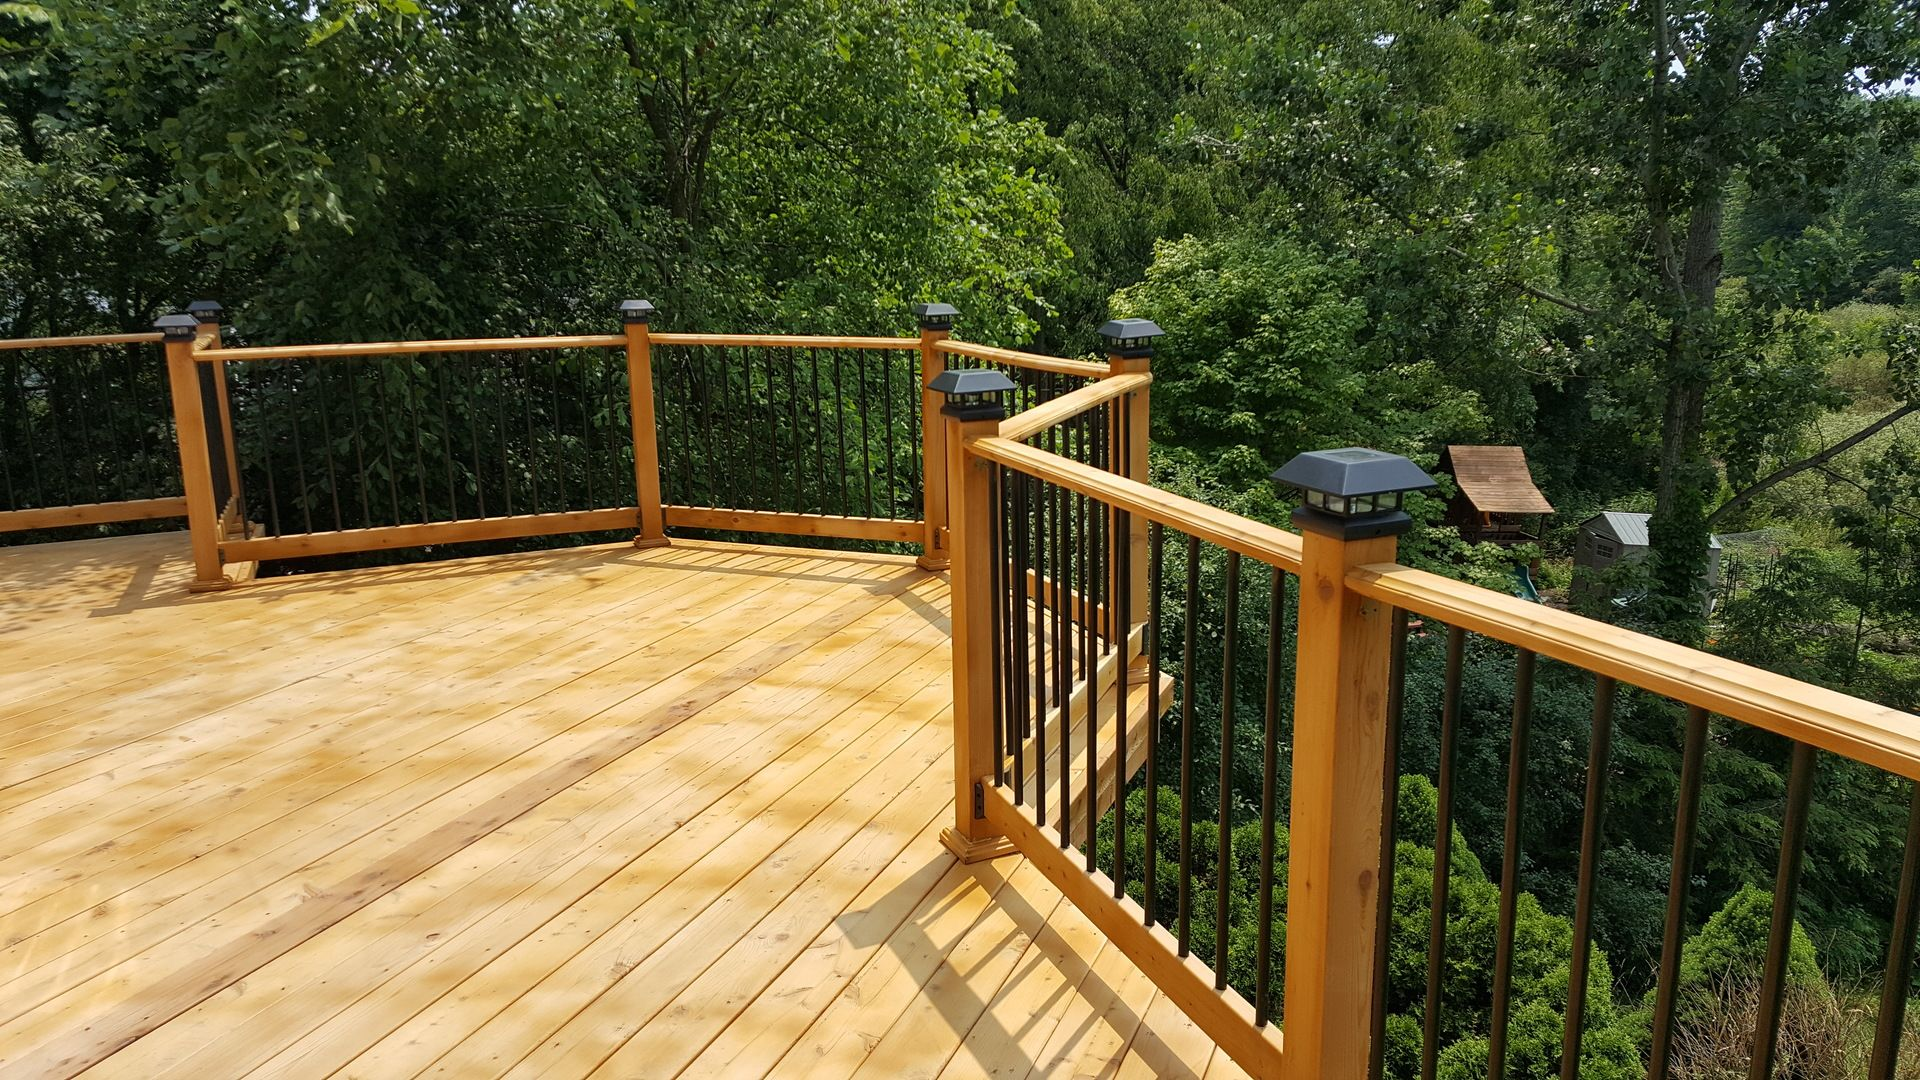 Deck Balusters For Deck Railing Deck Balusters Wood Deck Railing Deck Railing Design